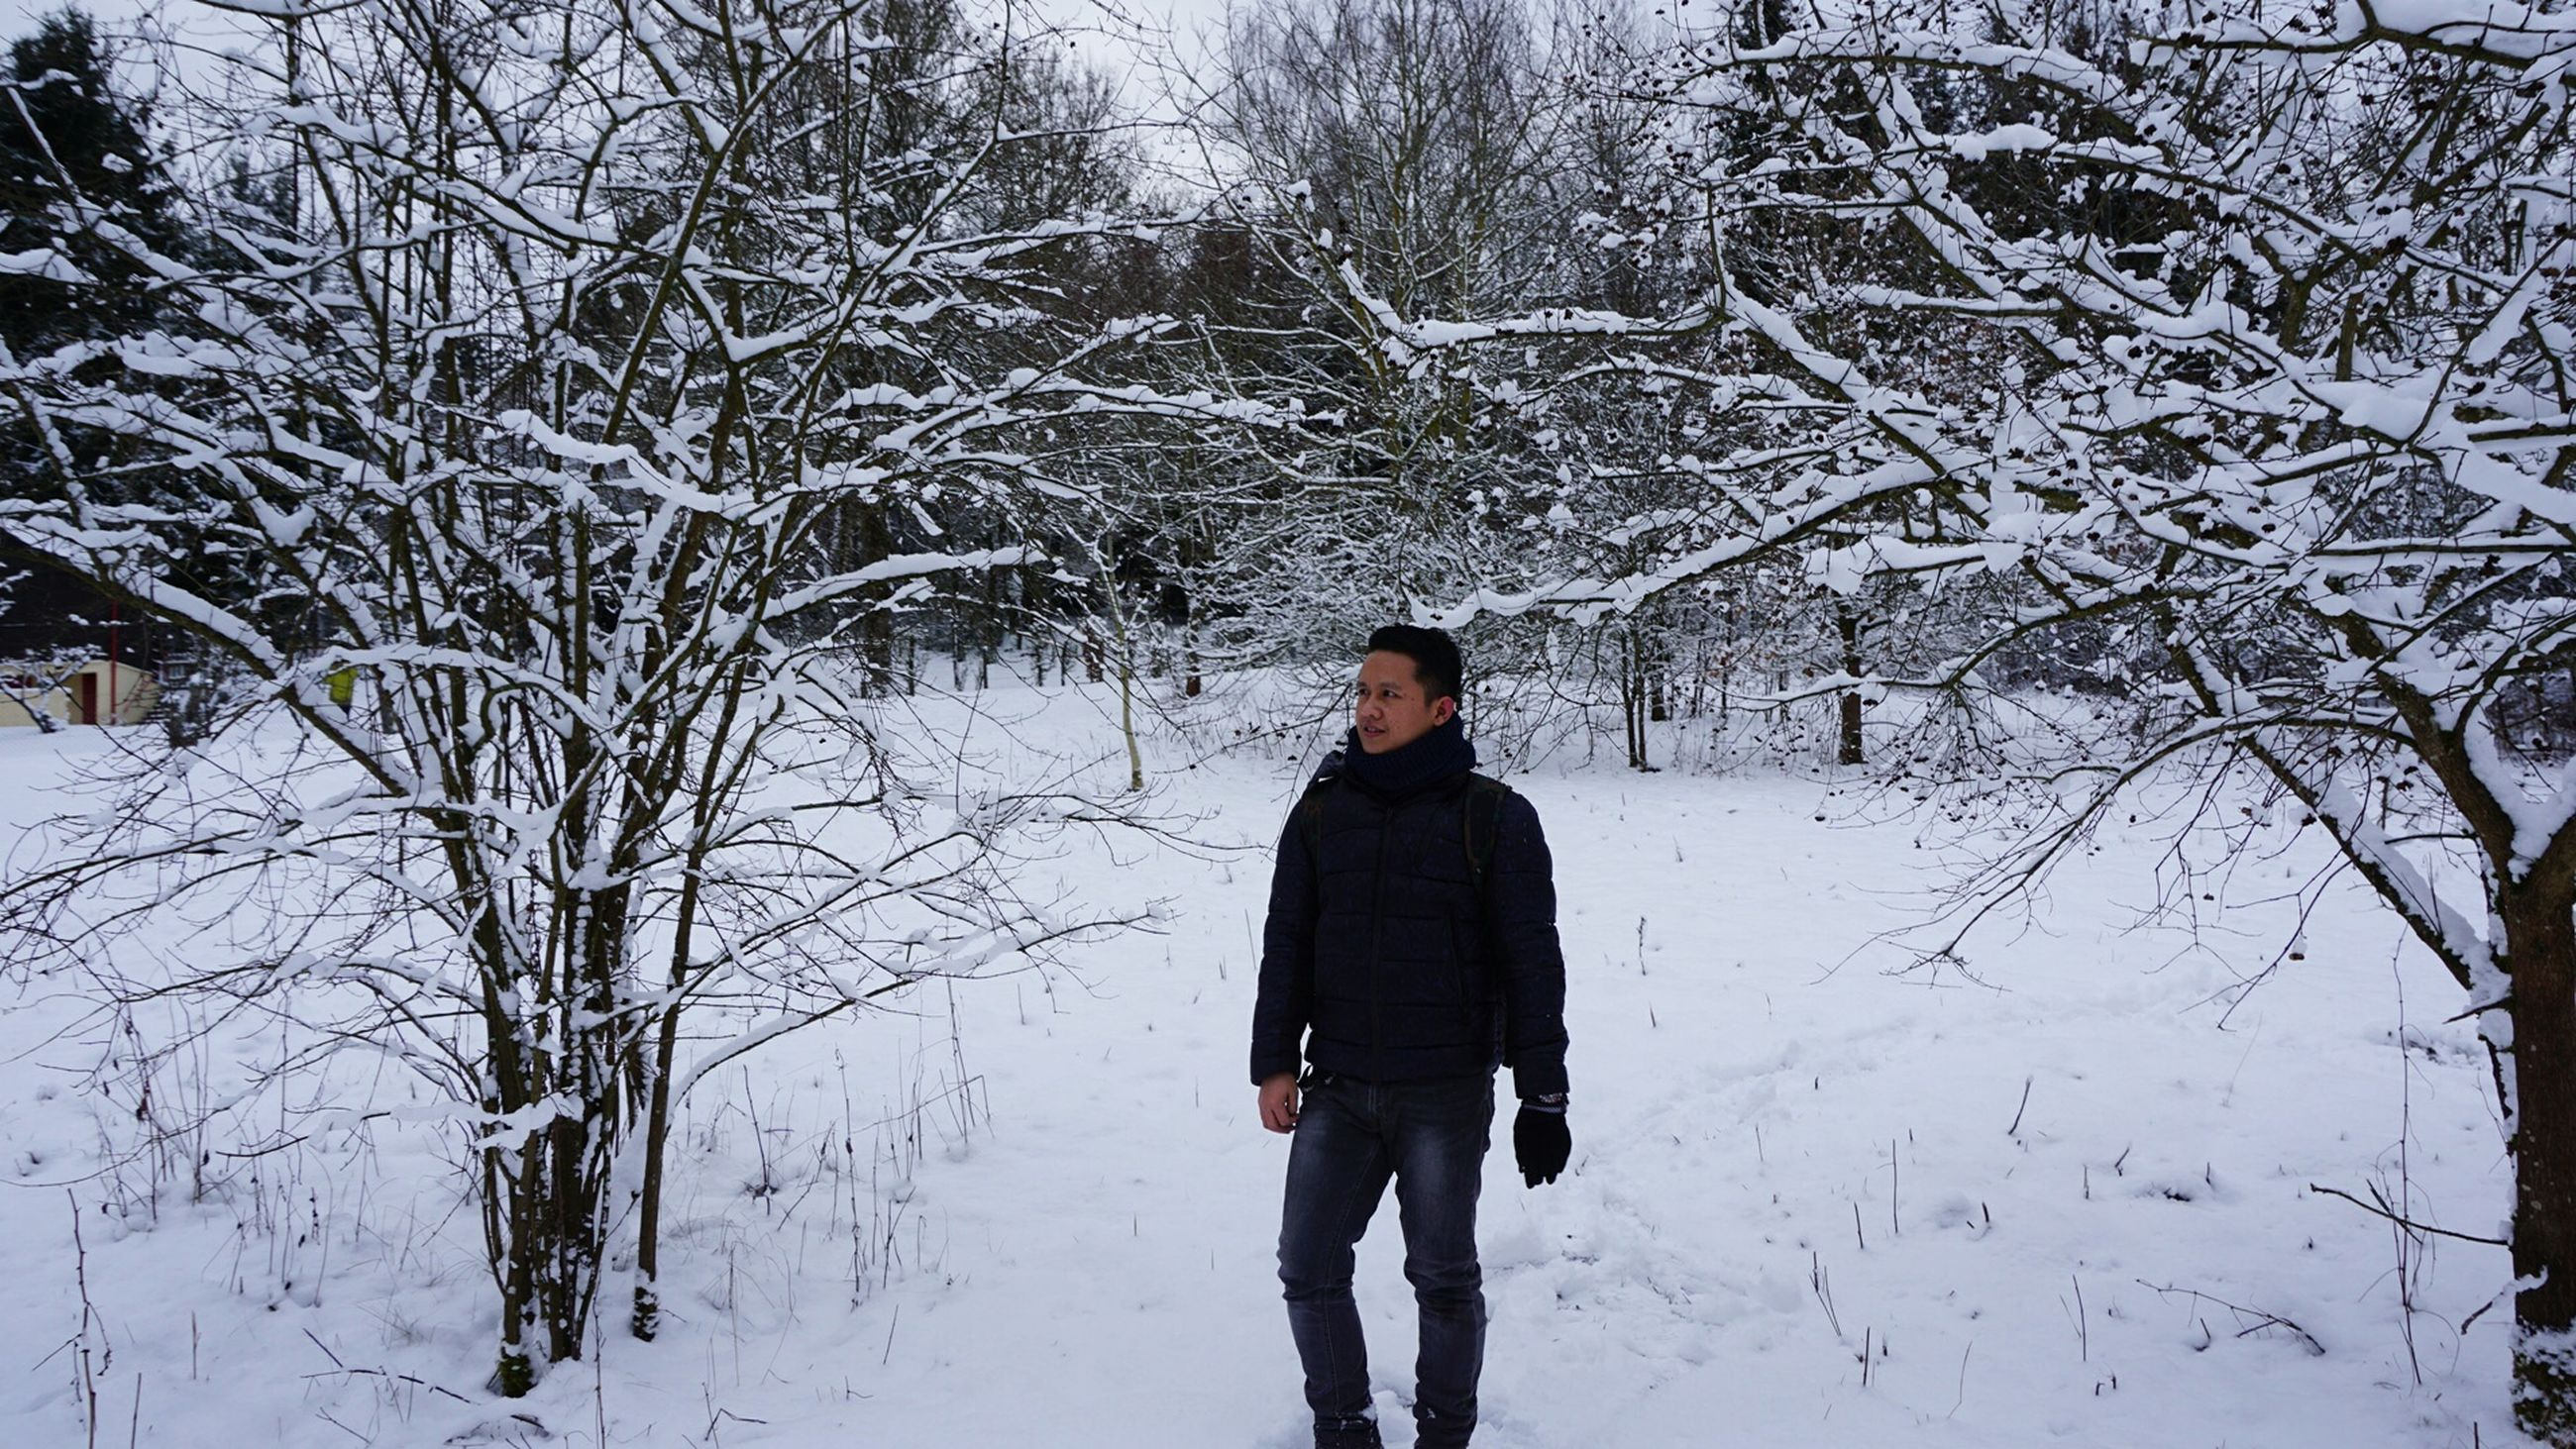 winter, snow, lifestyles, cold temperature, standing, leisure activity, rear view, tree, season, casual clothing, warm clothing, bare tree, full length, three quarter length, walking, young adult, nature, weather